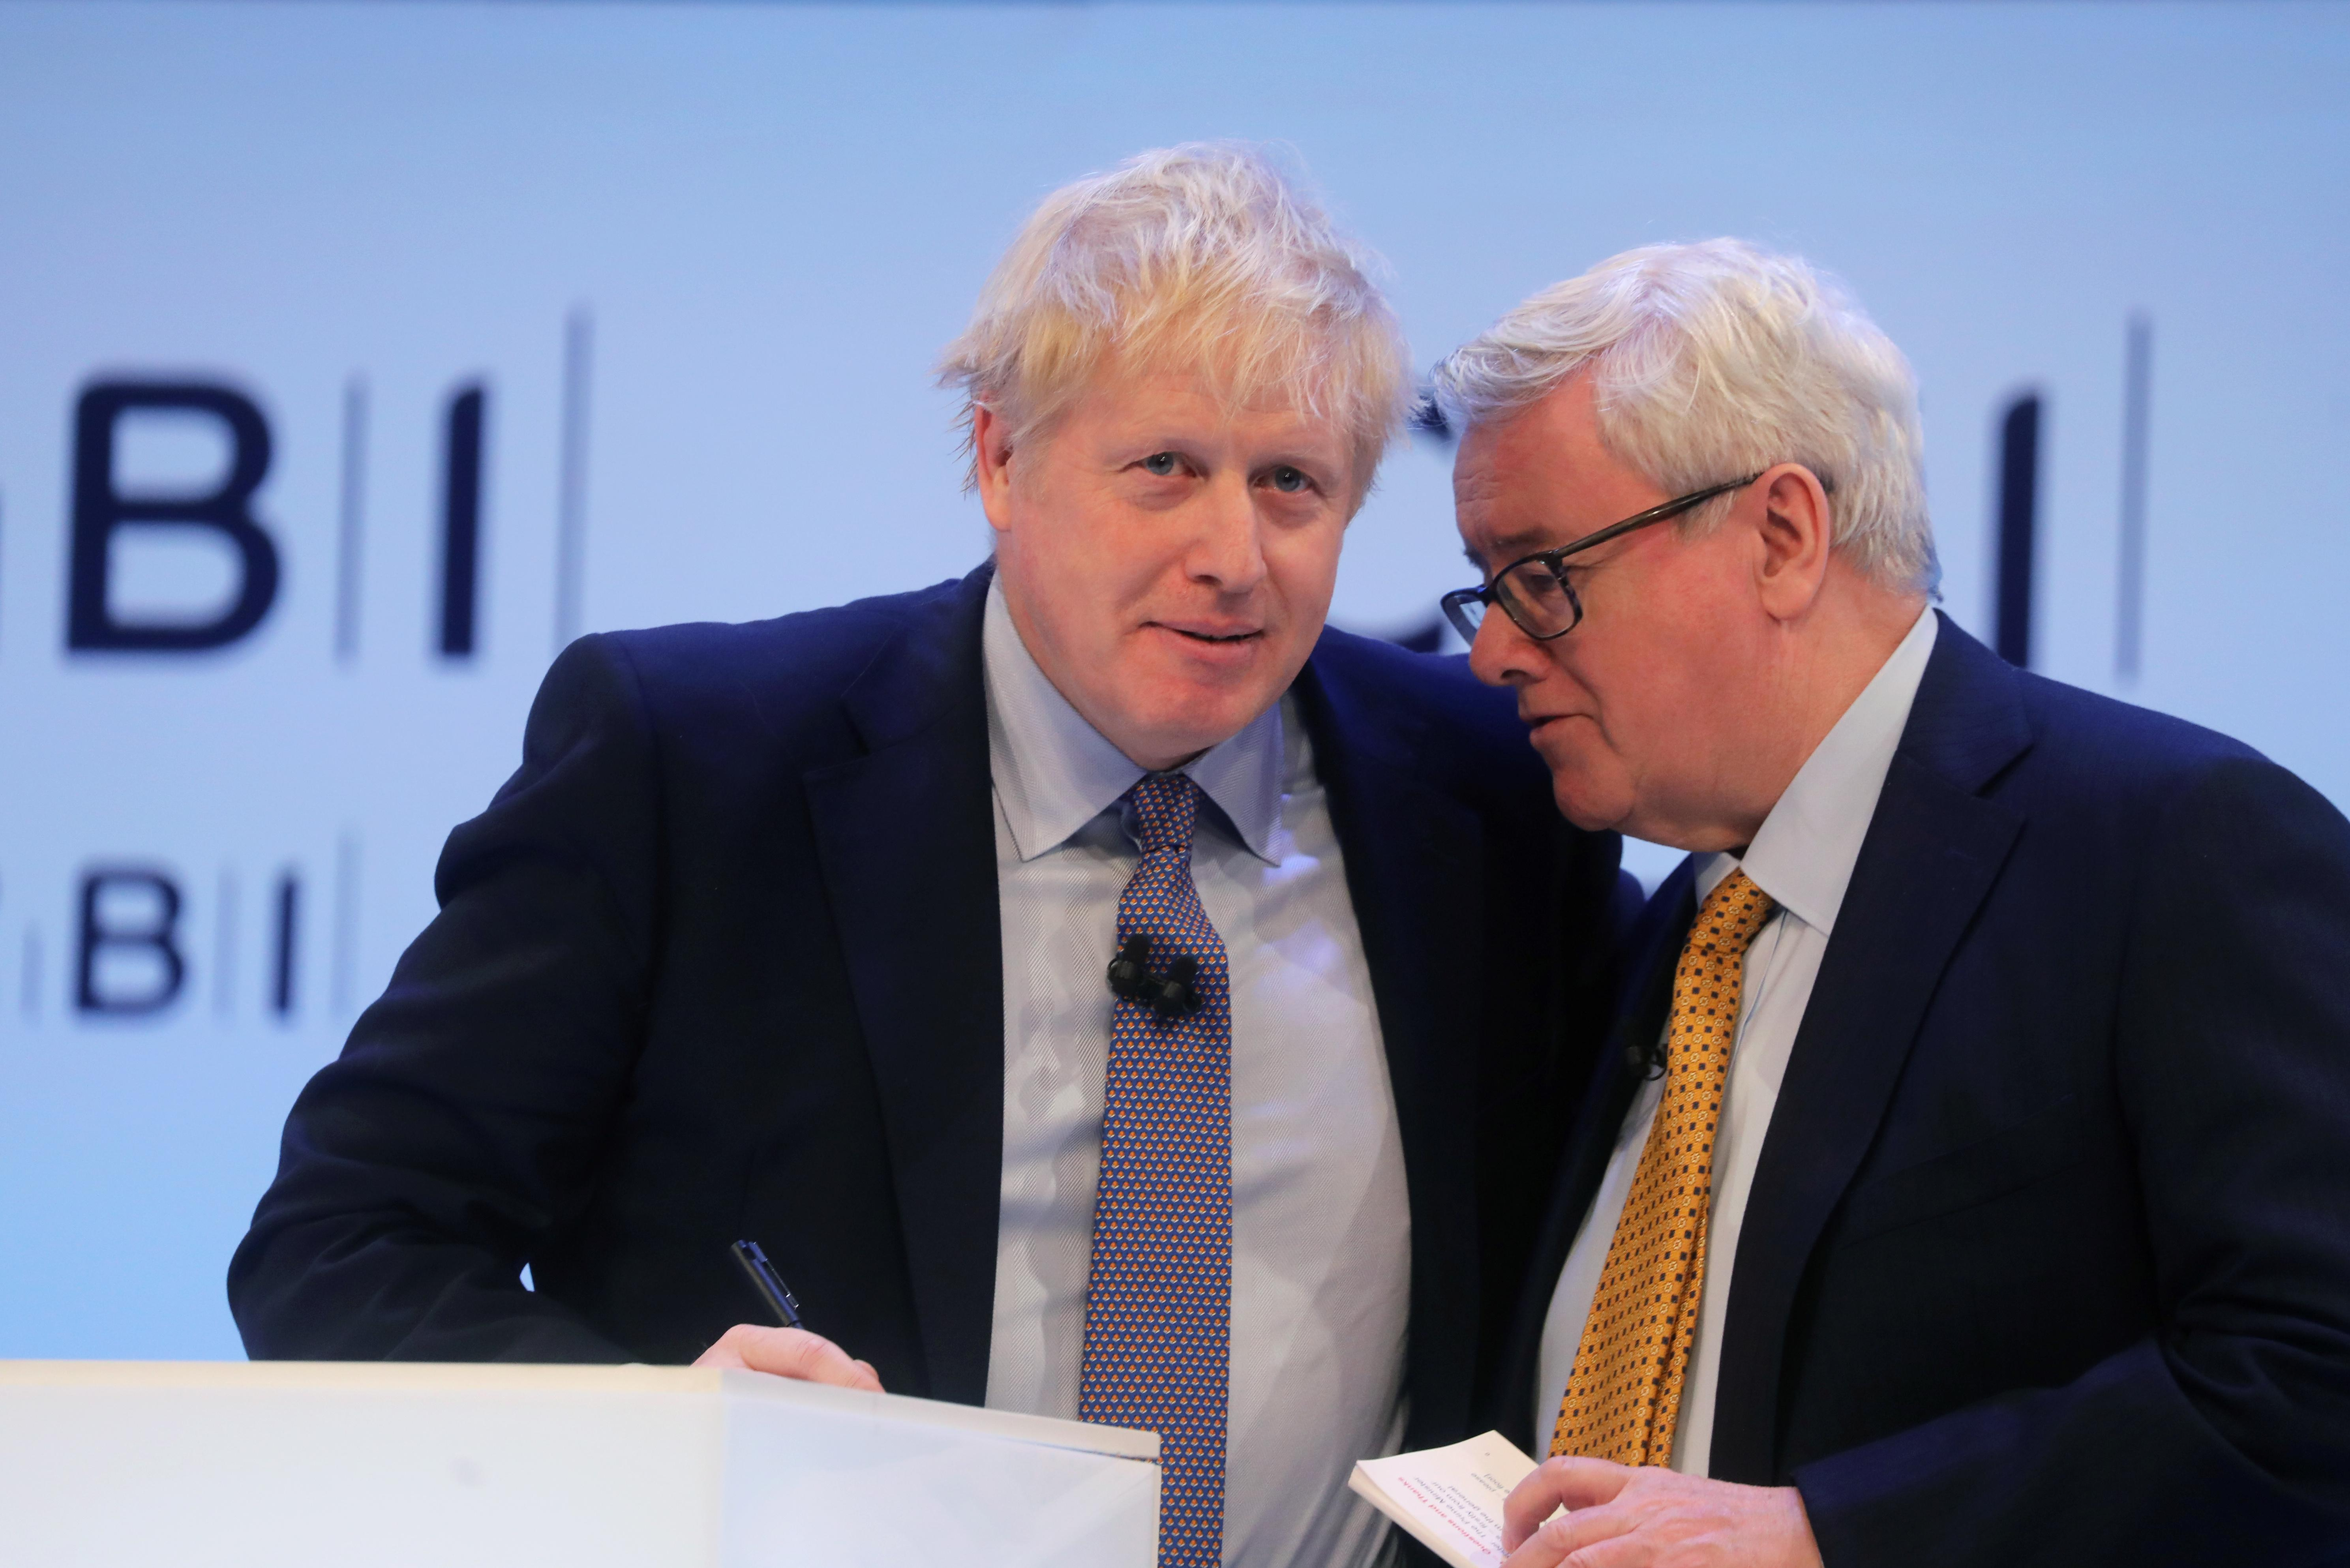 UK PM Johnson's Conservatives extend lead over Labour: ICM poll